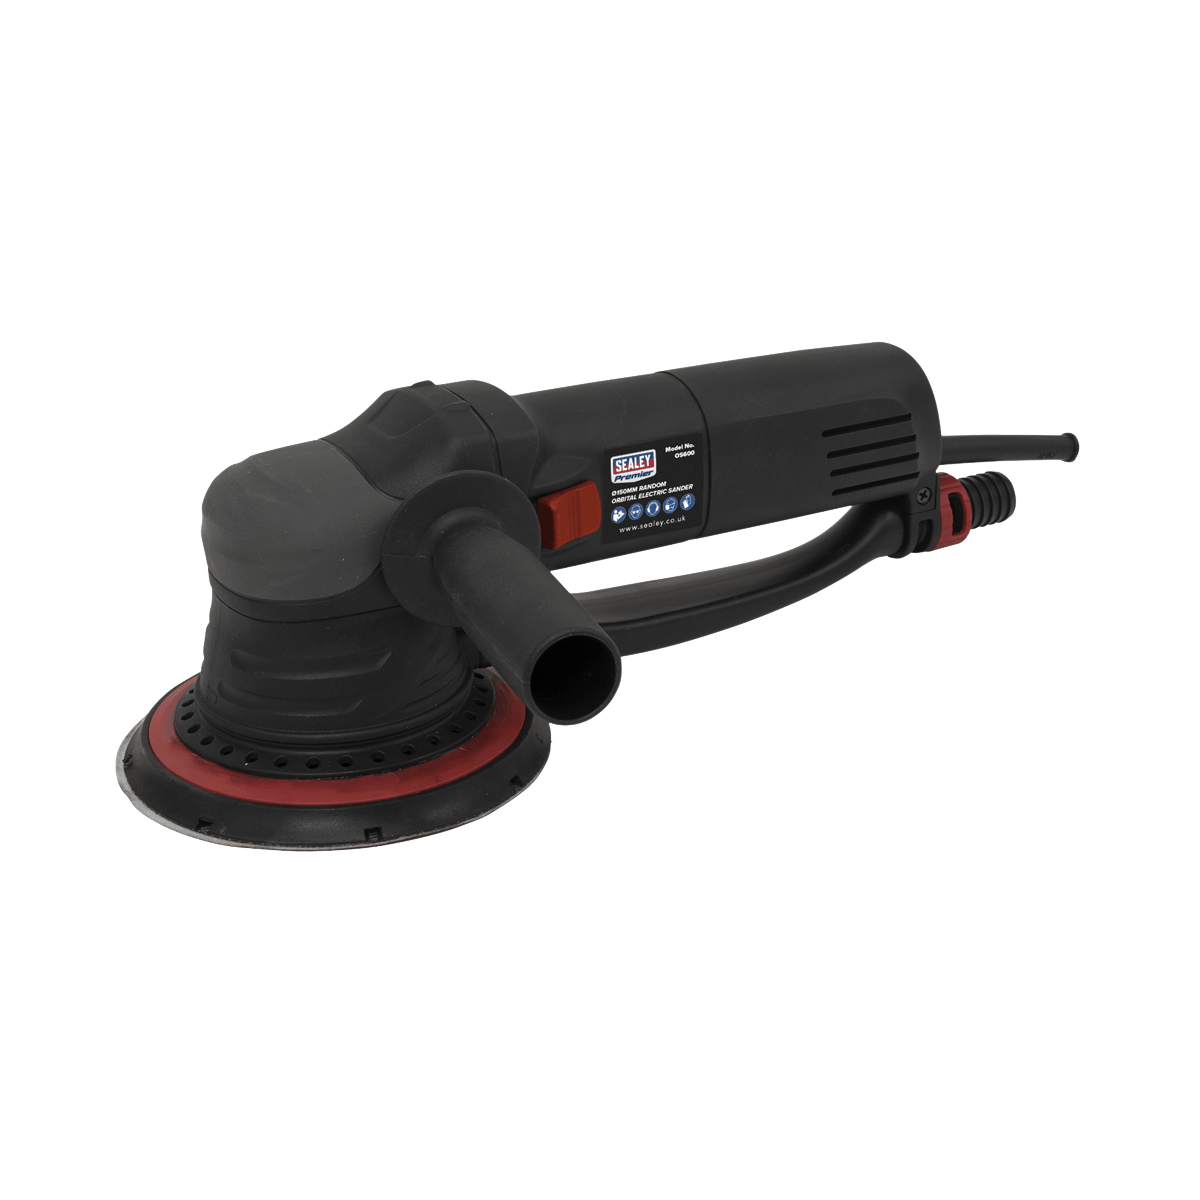 Sealey Random Orbital Electric Sander OS600 | 6-Stage variable speed control from 3200-7200rpm. | toolforce.ie